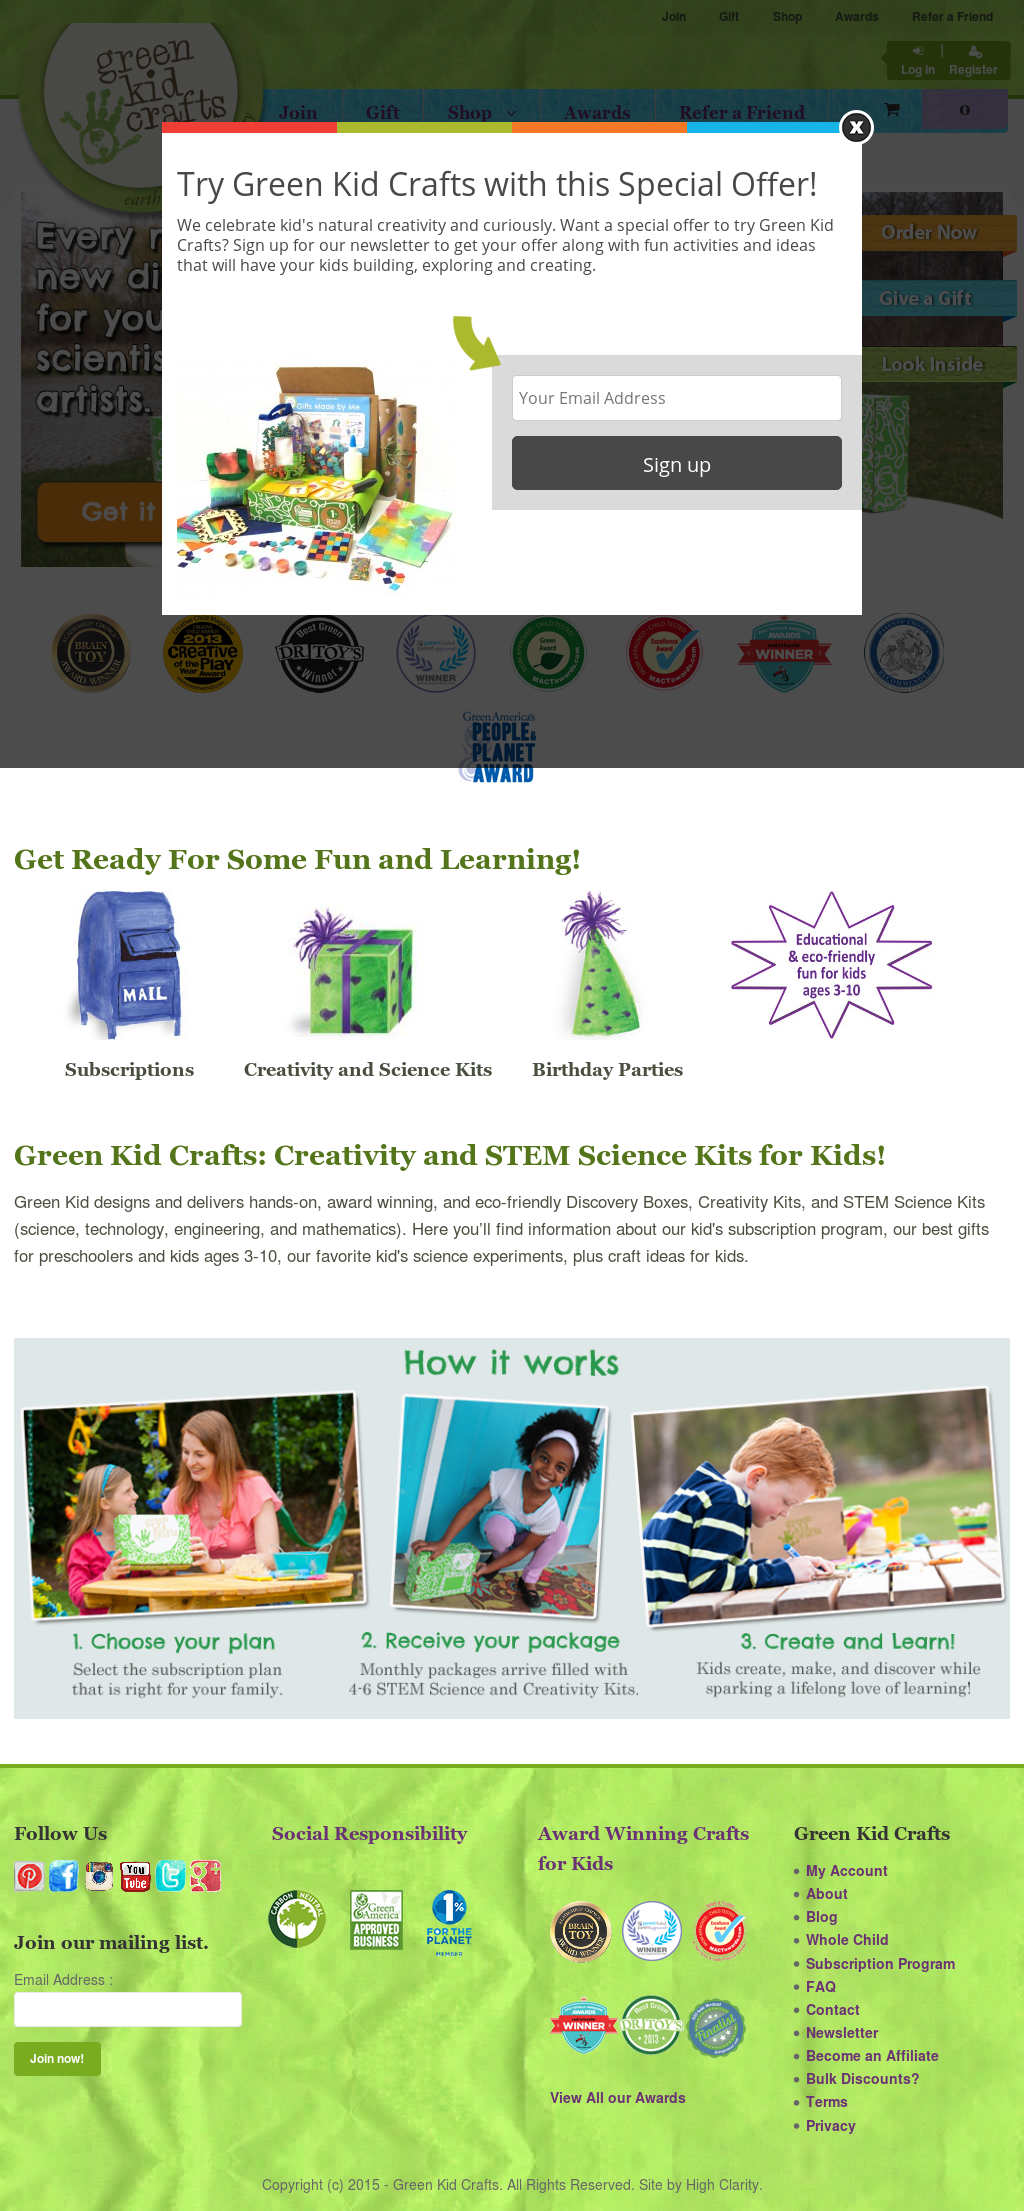 Green Kid Crafts Competitors, Revenue and Employees - Owler